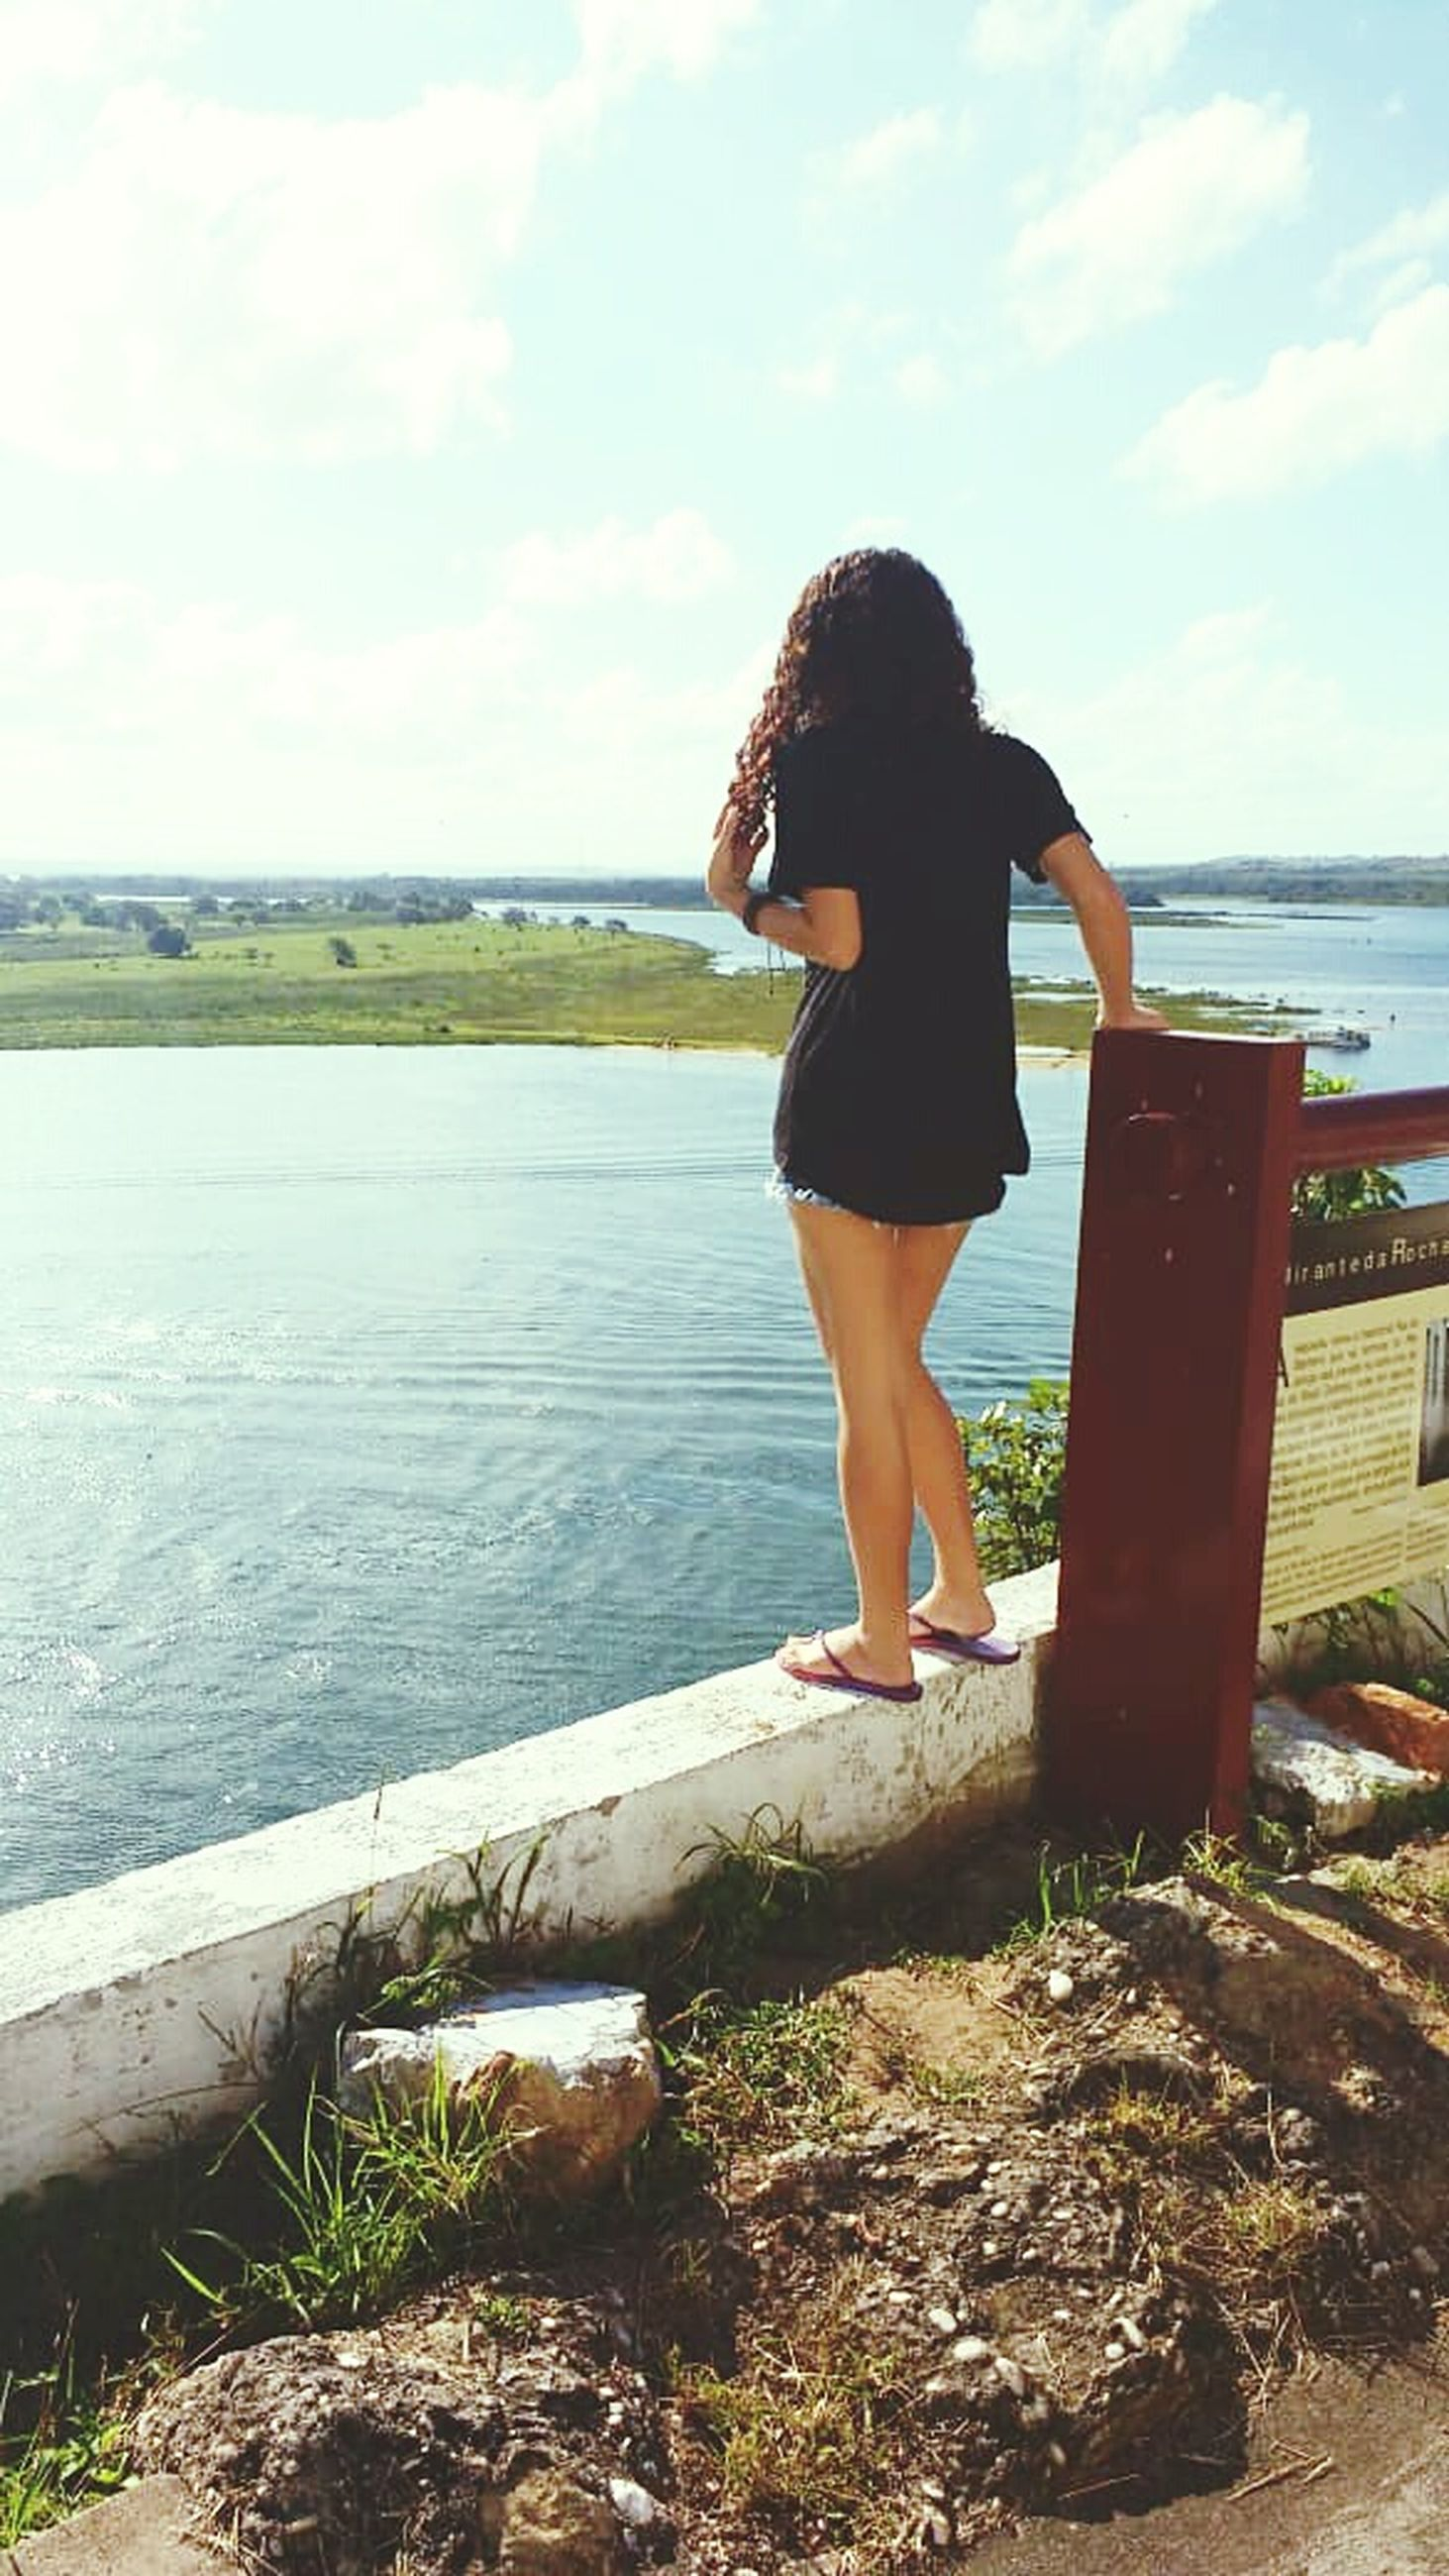 water, one person, sky, full length, leisure activity, nature, standing, real people, day, rear view, beauty in nature, lifestyles, women, sea, scenics - nature, young adult, casual clothing, adult, outdoors, hairstyle, looking at view